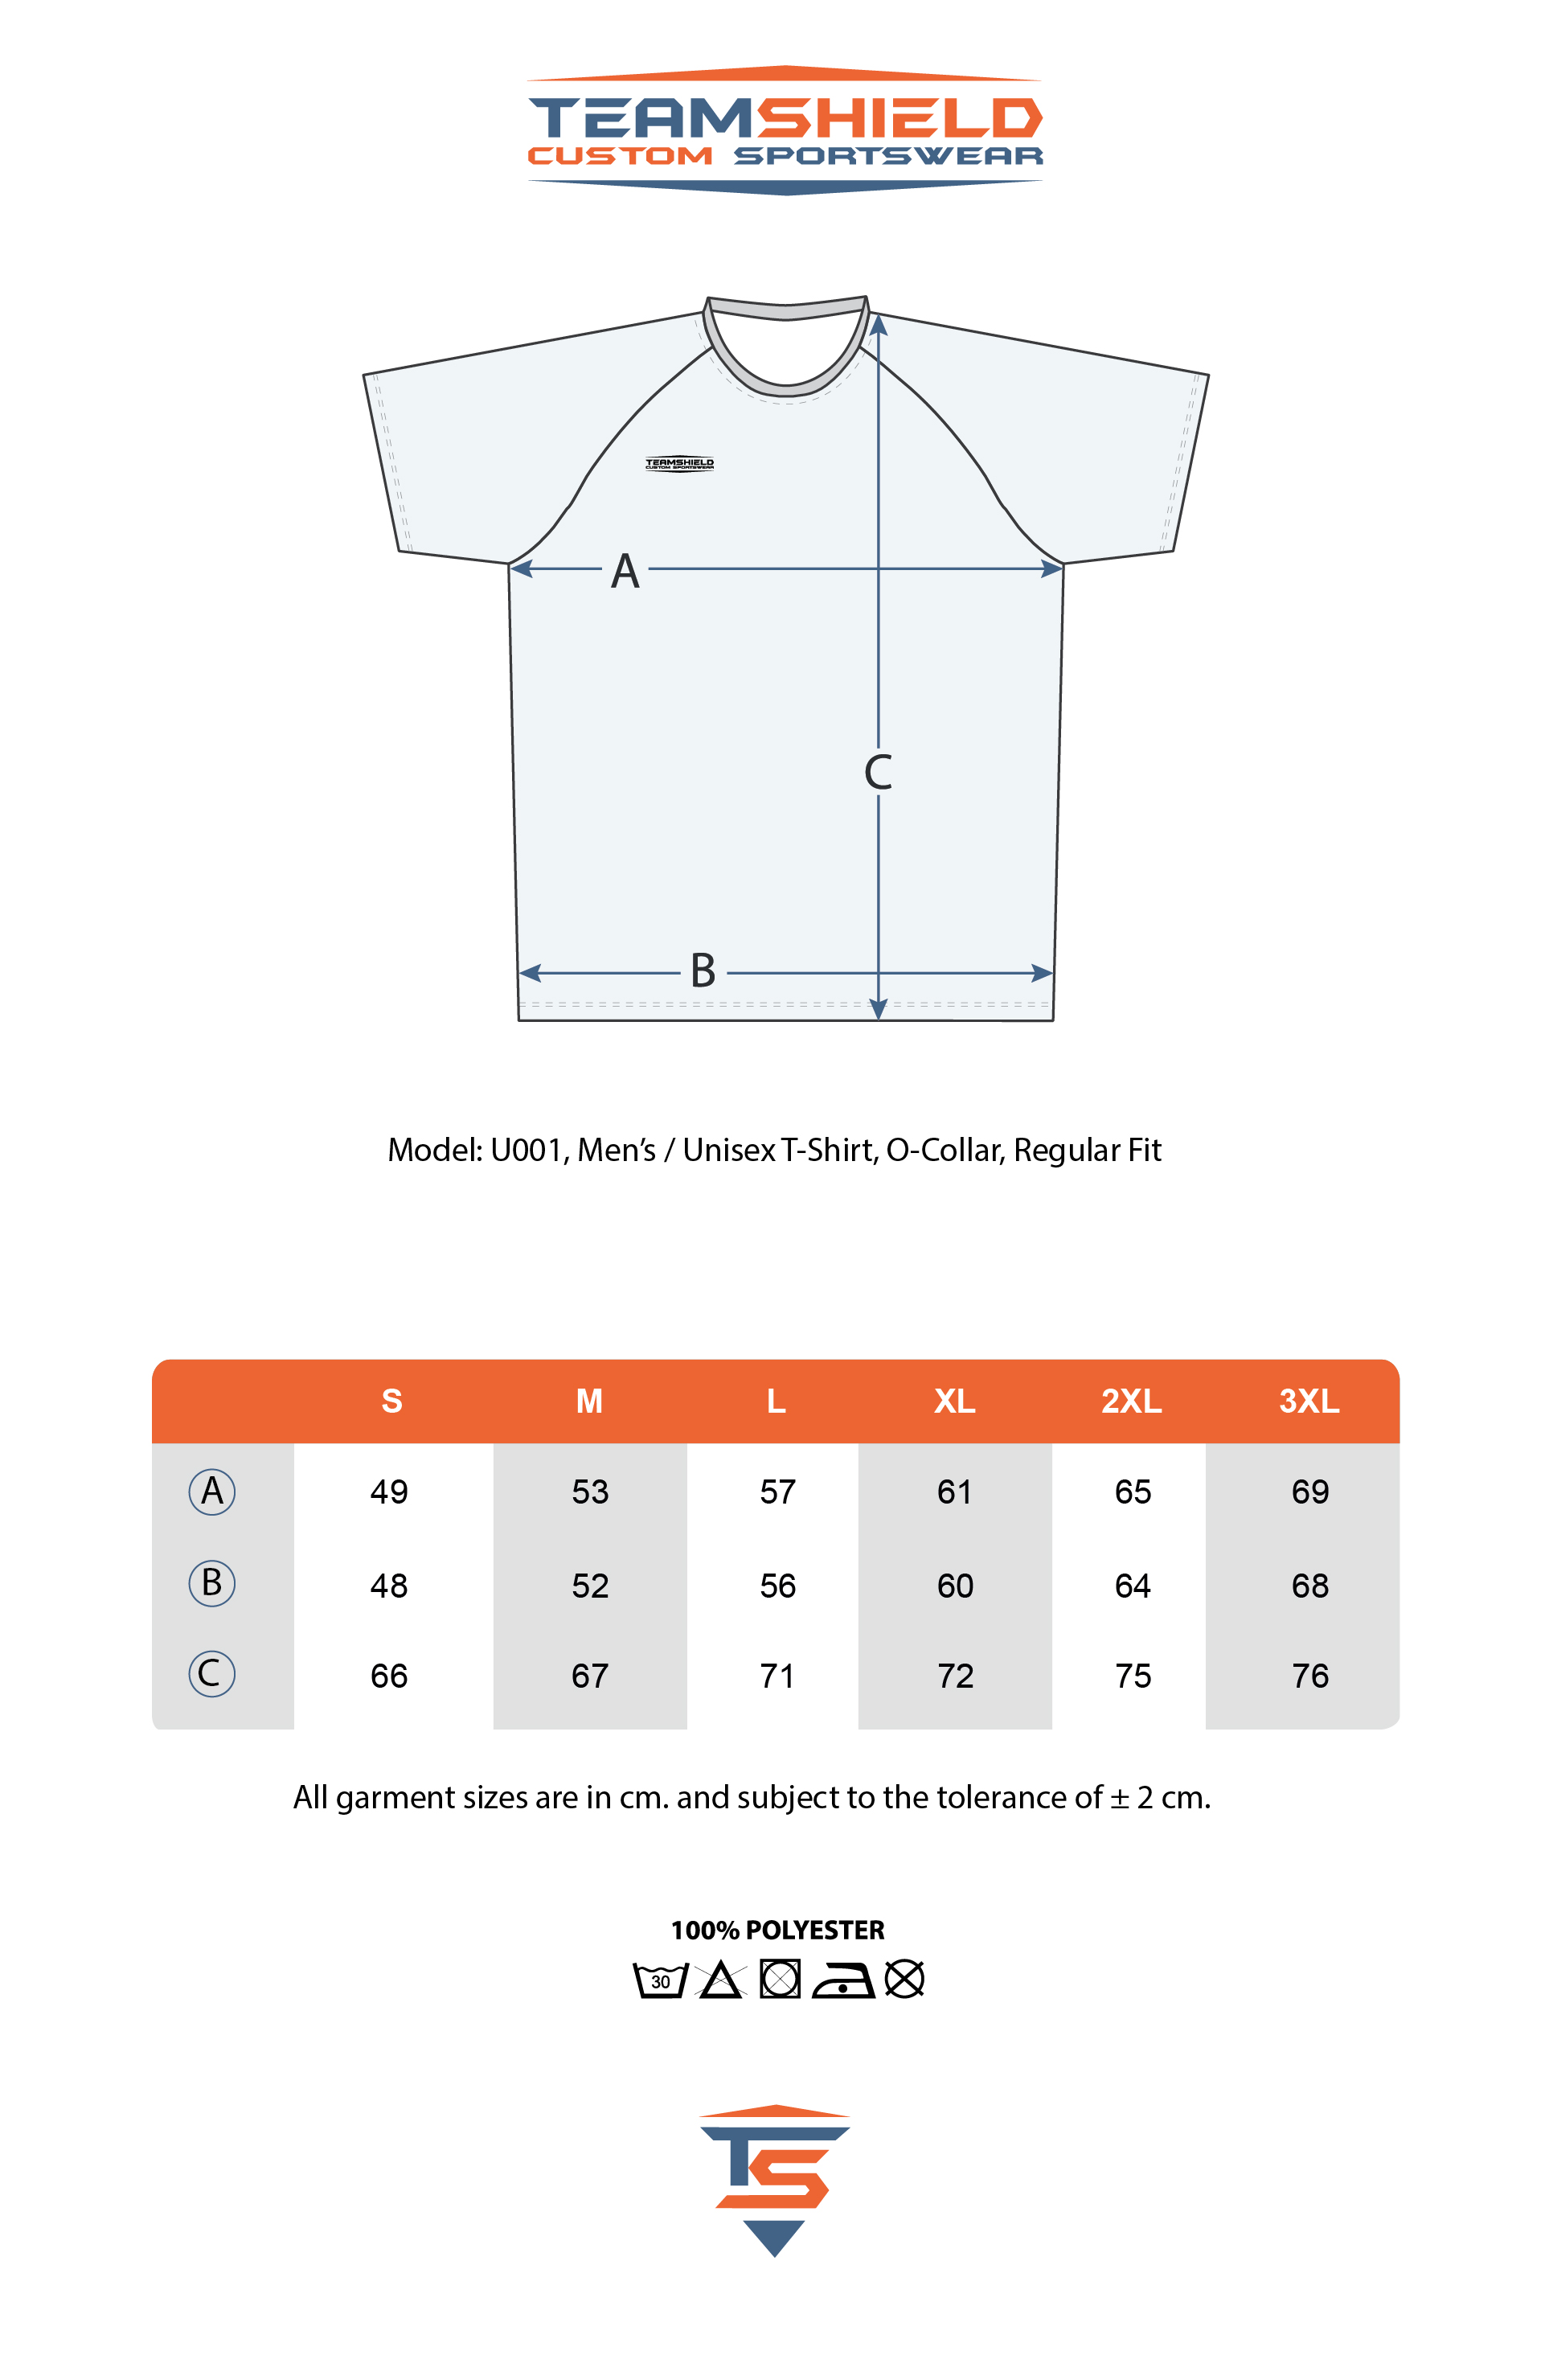 Teamshield-Custom-Teamwear-Sizechart-U001-Raglan-Sublimation-Shirt-Regular-Fit